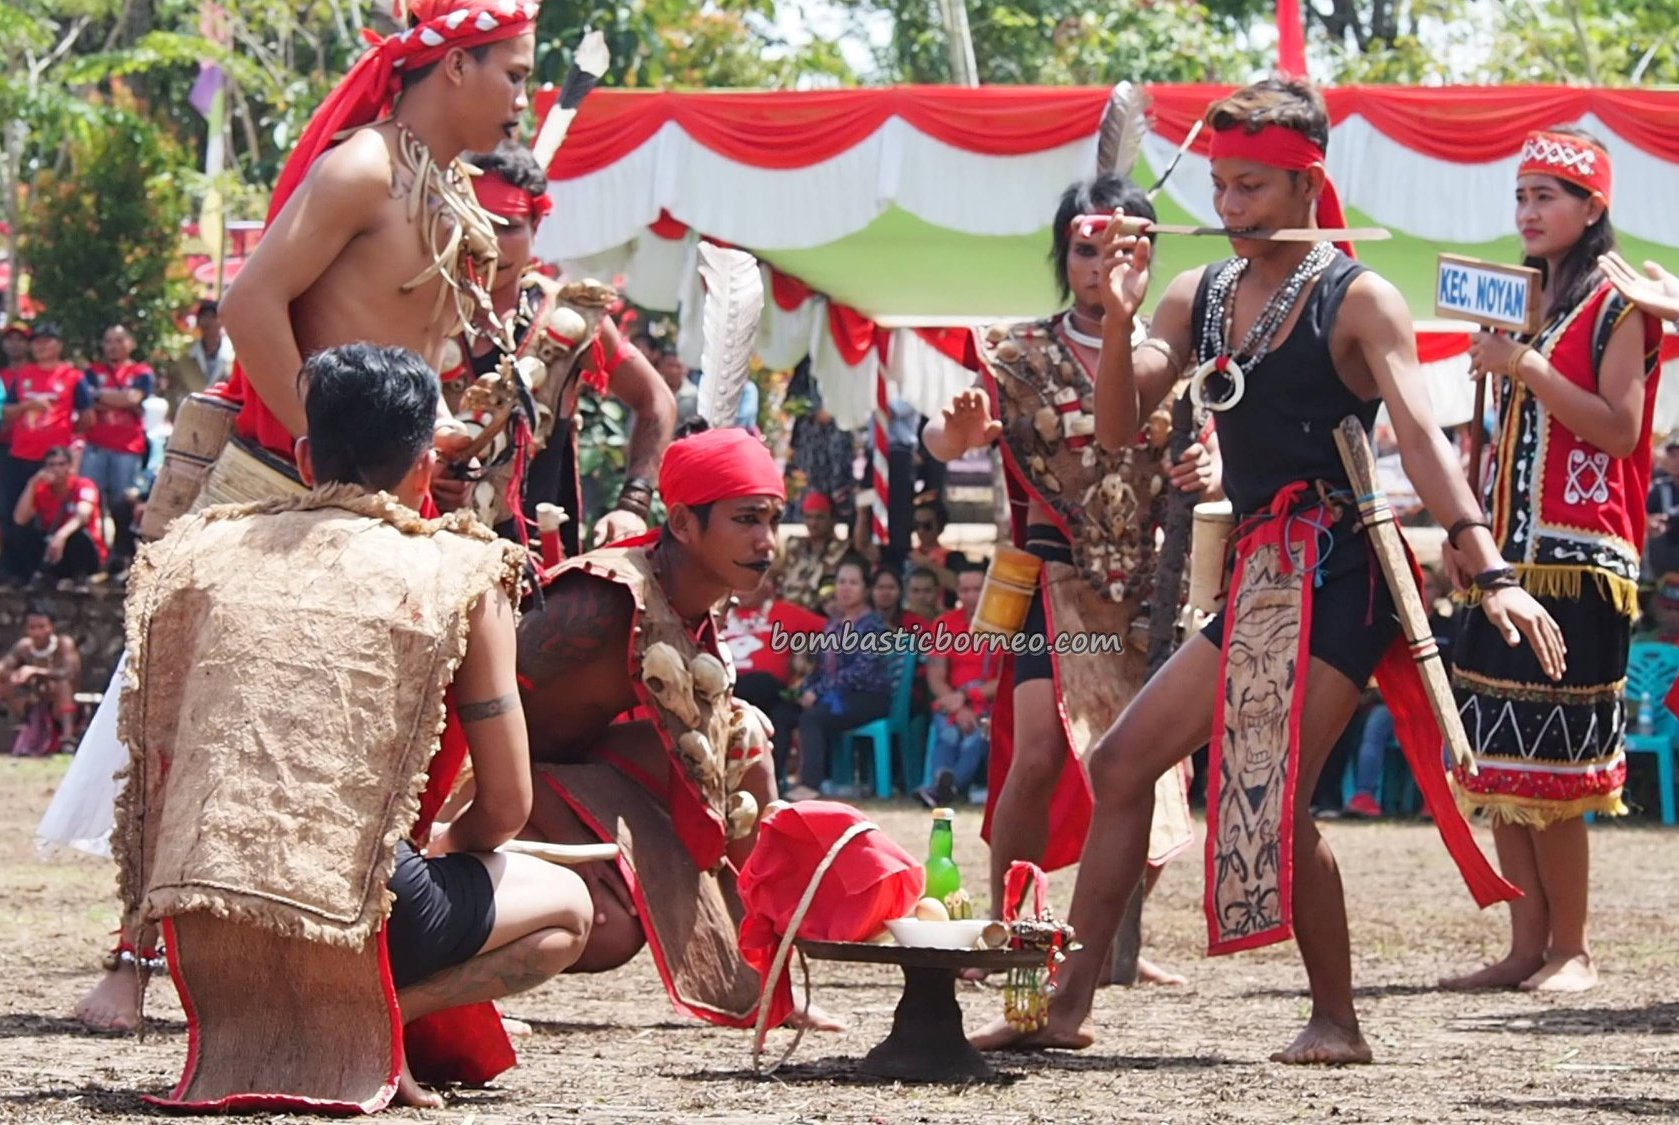 Gawai Dayak, paddy harvest festival, authentic, traditional, destination, culture, event, Borneo, Indonesia, native, tribe, Tourism, travel guide, trans border, 婆罗洲印尼西加里曼丹, 土著丰收节旅游,